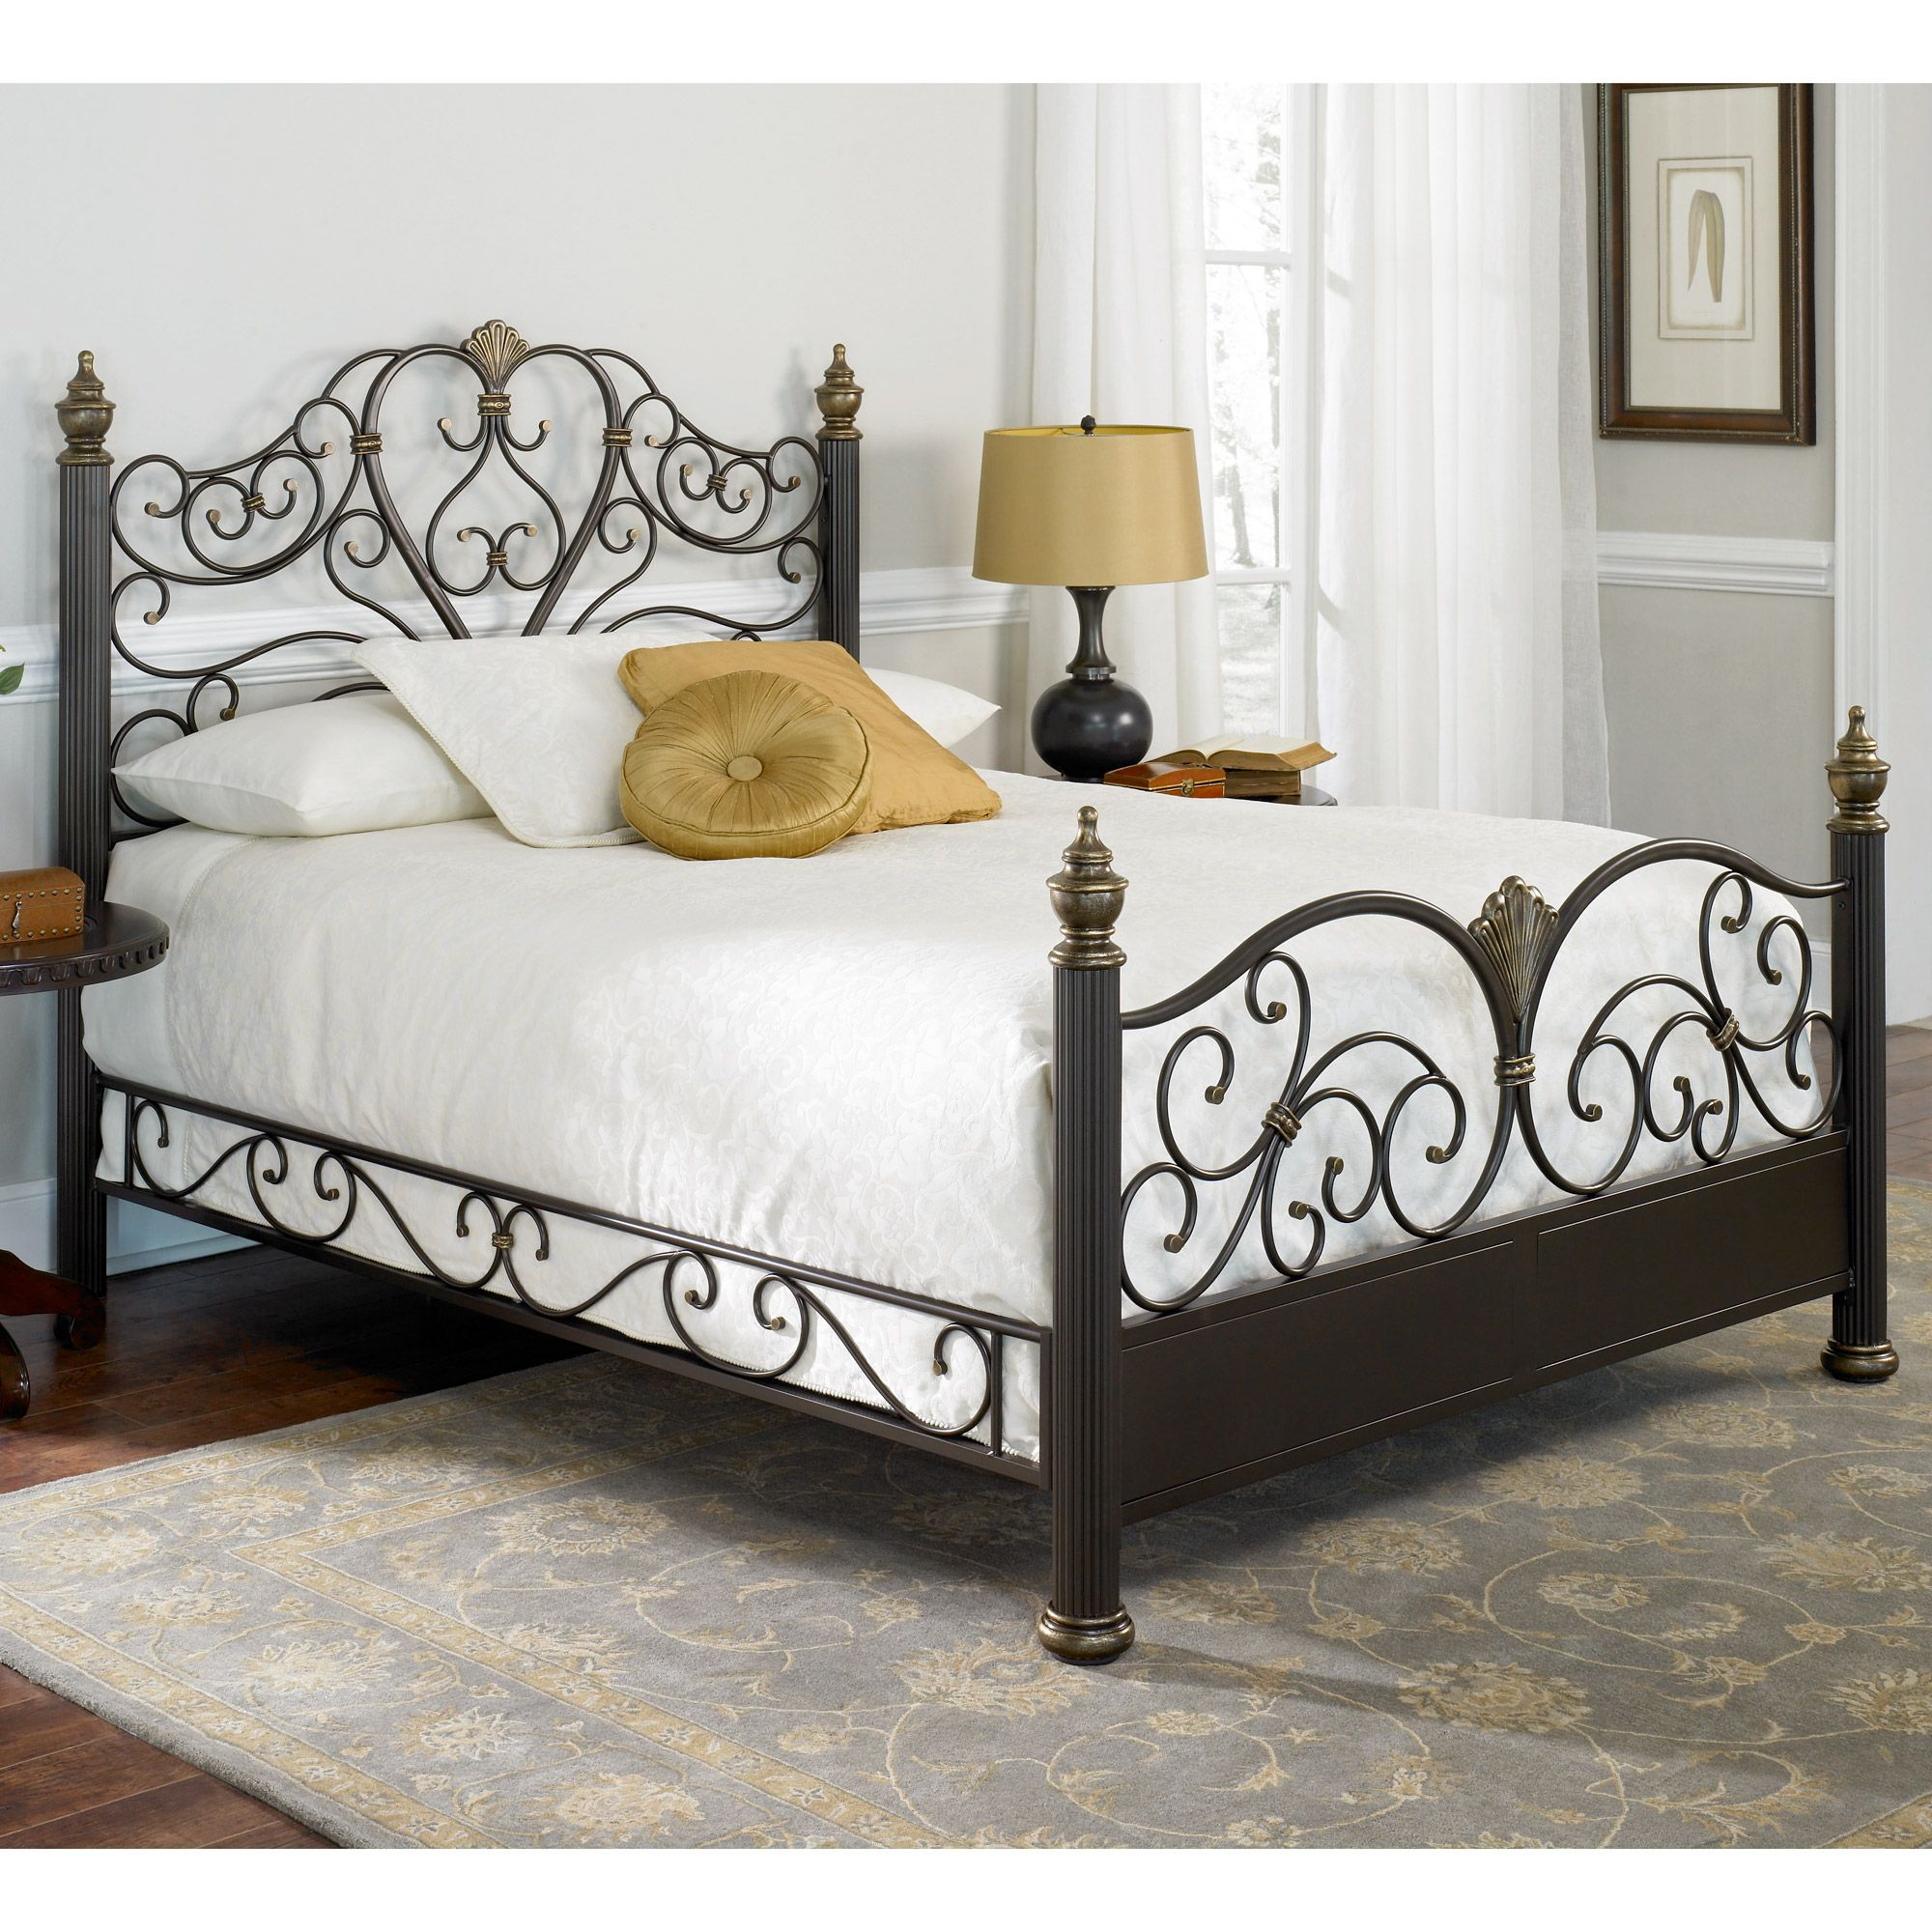 Metal headboard bed frame - Elegance Iron Bed